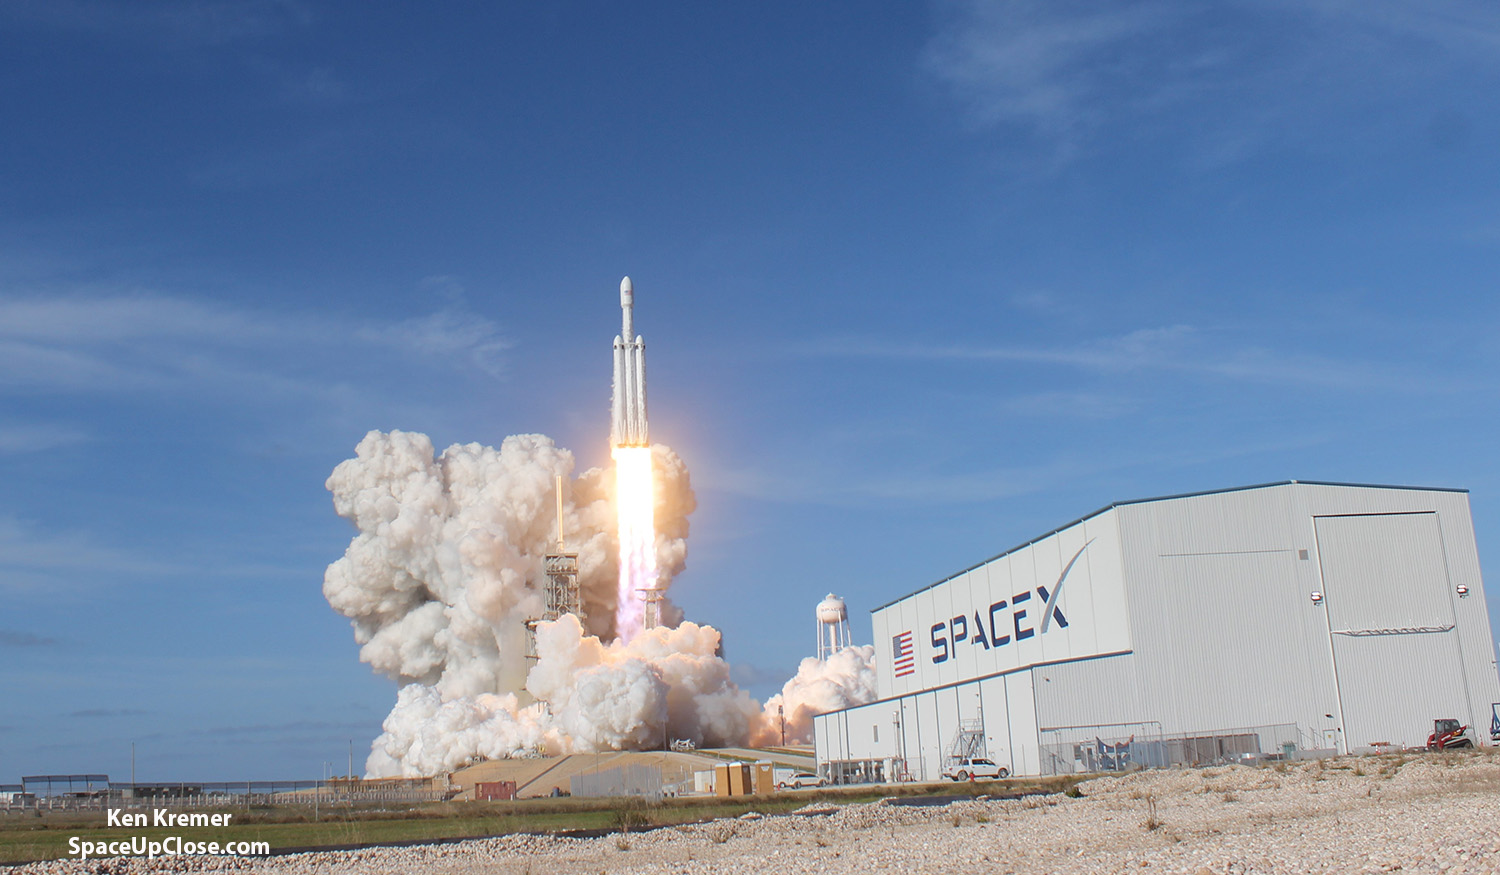 Space UpClose: 1st SpaceX Falcon Heavy Blasts off with